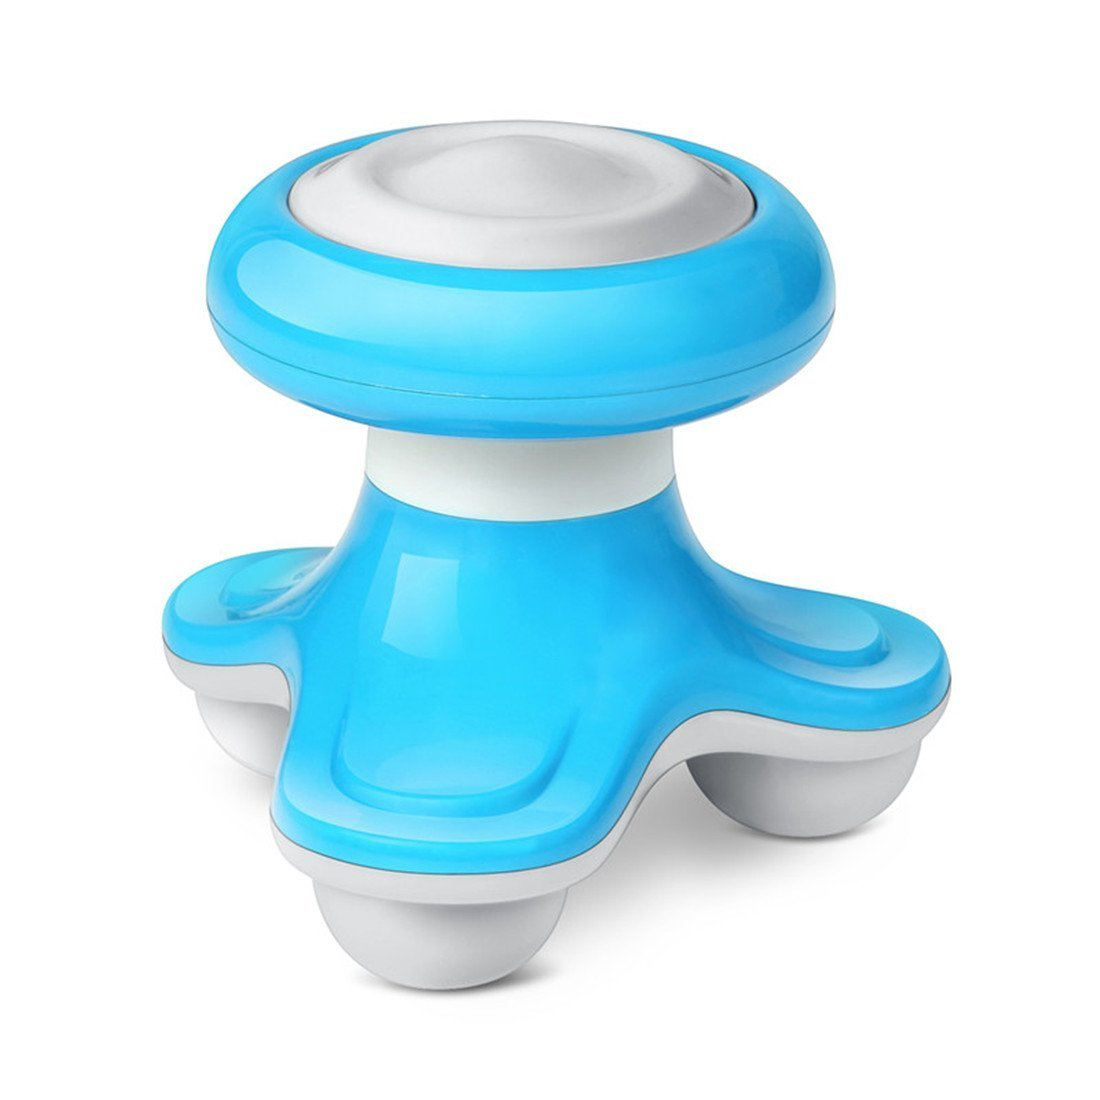 Mini Massager Tripod Shape Electric Portable Hand Held with Vibrating Function for Back, Neck & Body Massager (Blue)